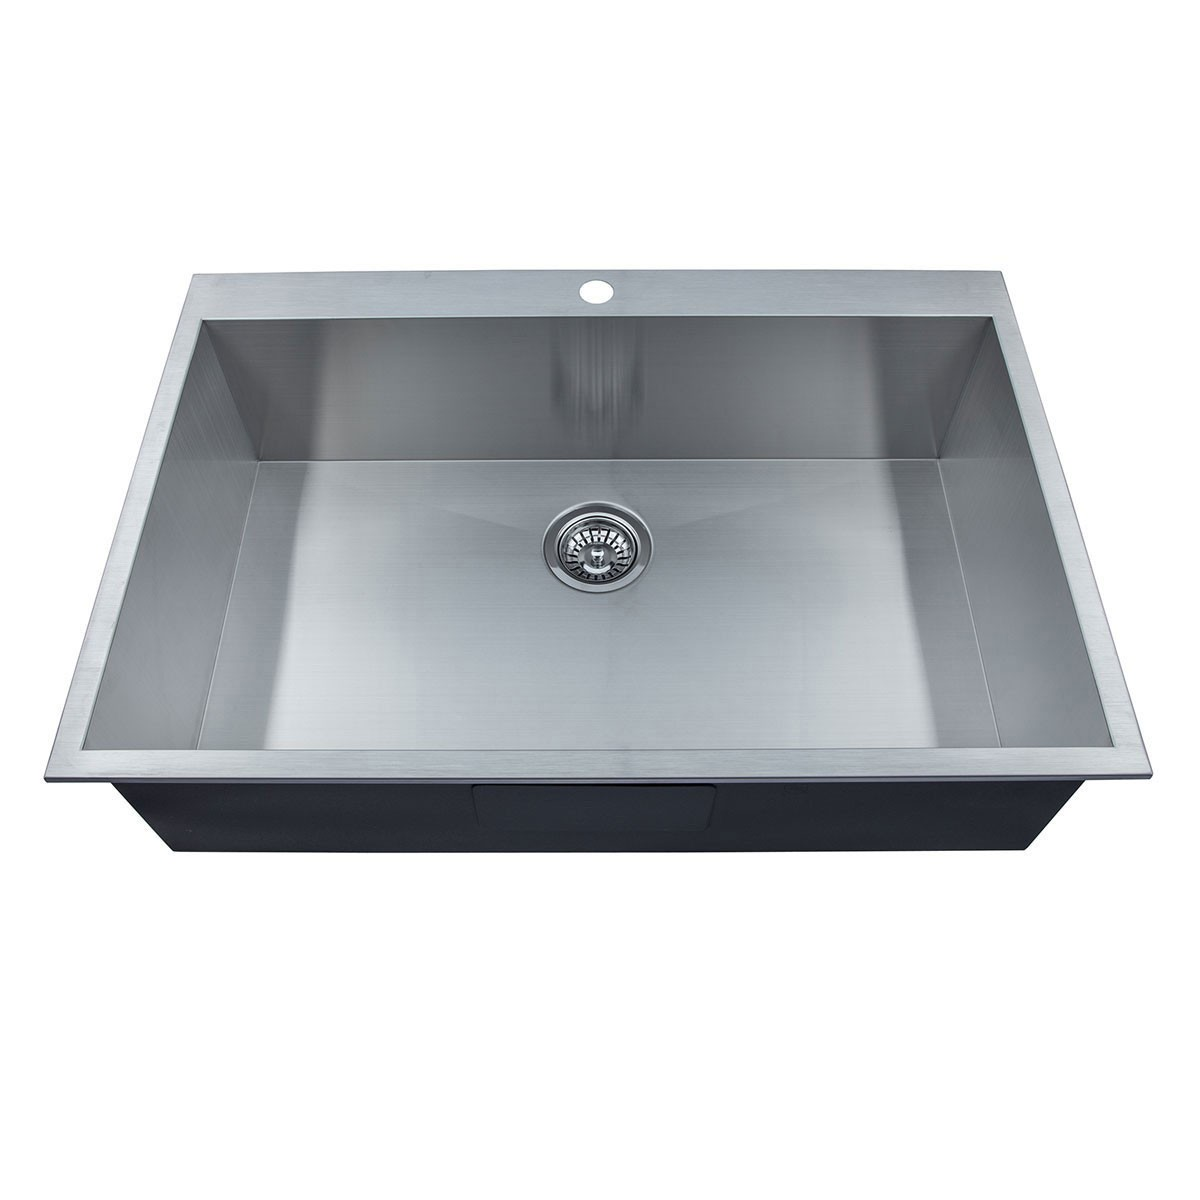 33 x 22 In. Stainless Steel Single Bowl Handmade Kitchen Sink (AS3322-R0)